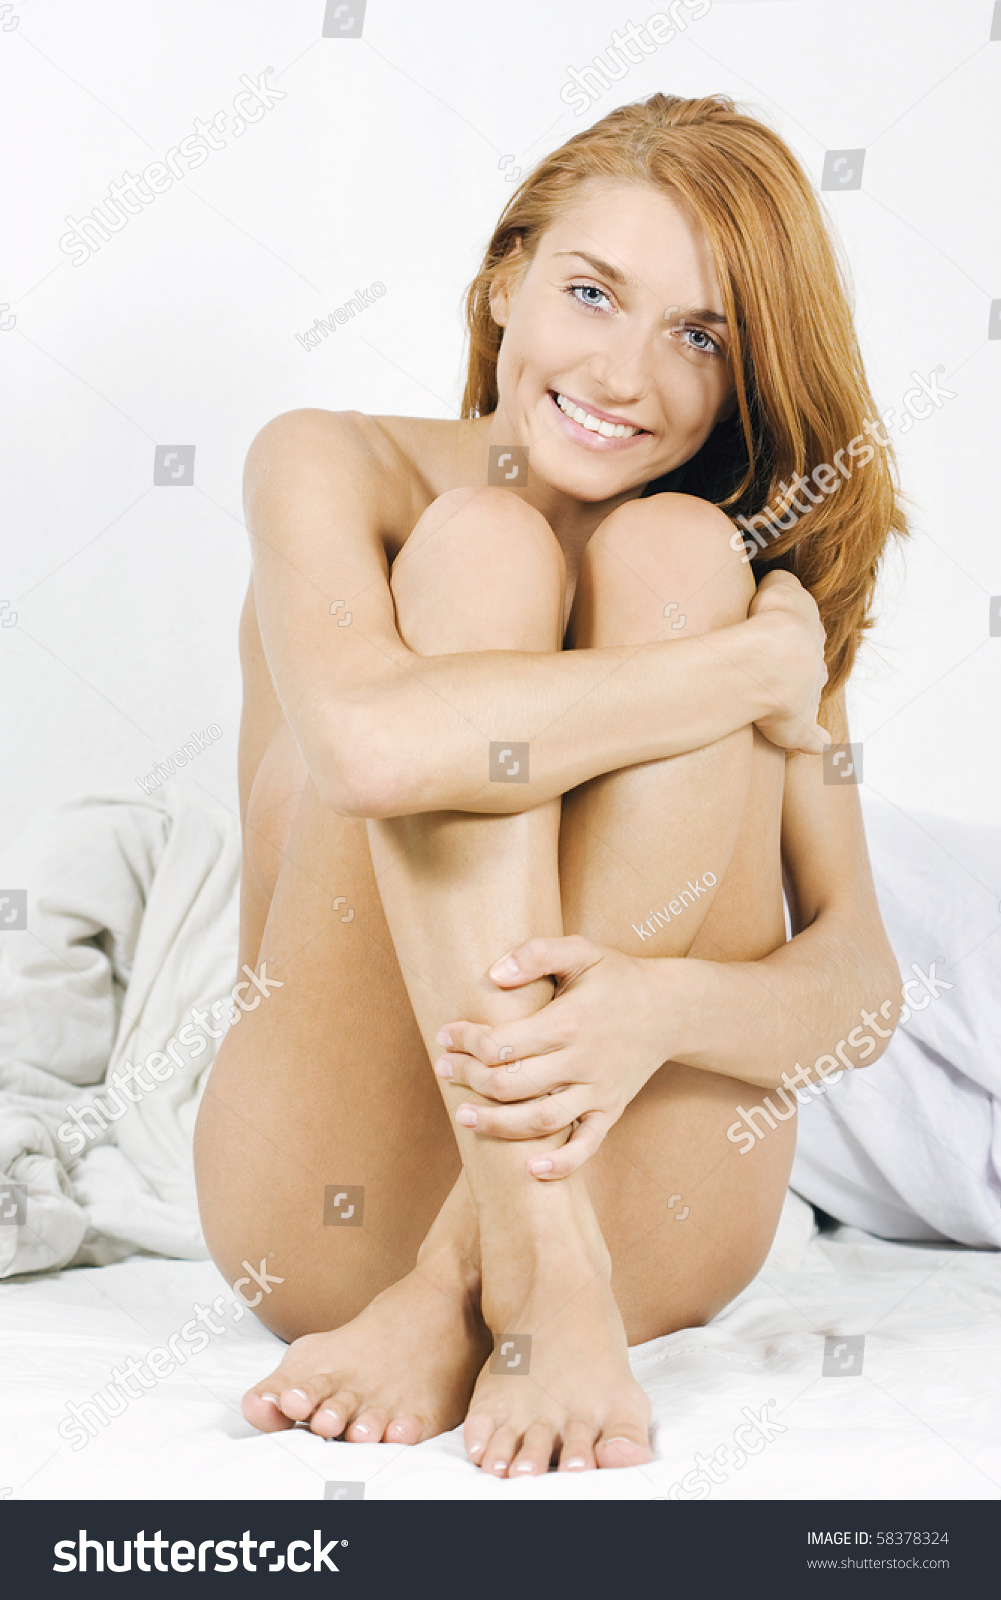 naked Girl sitting